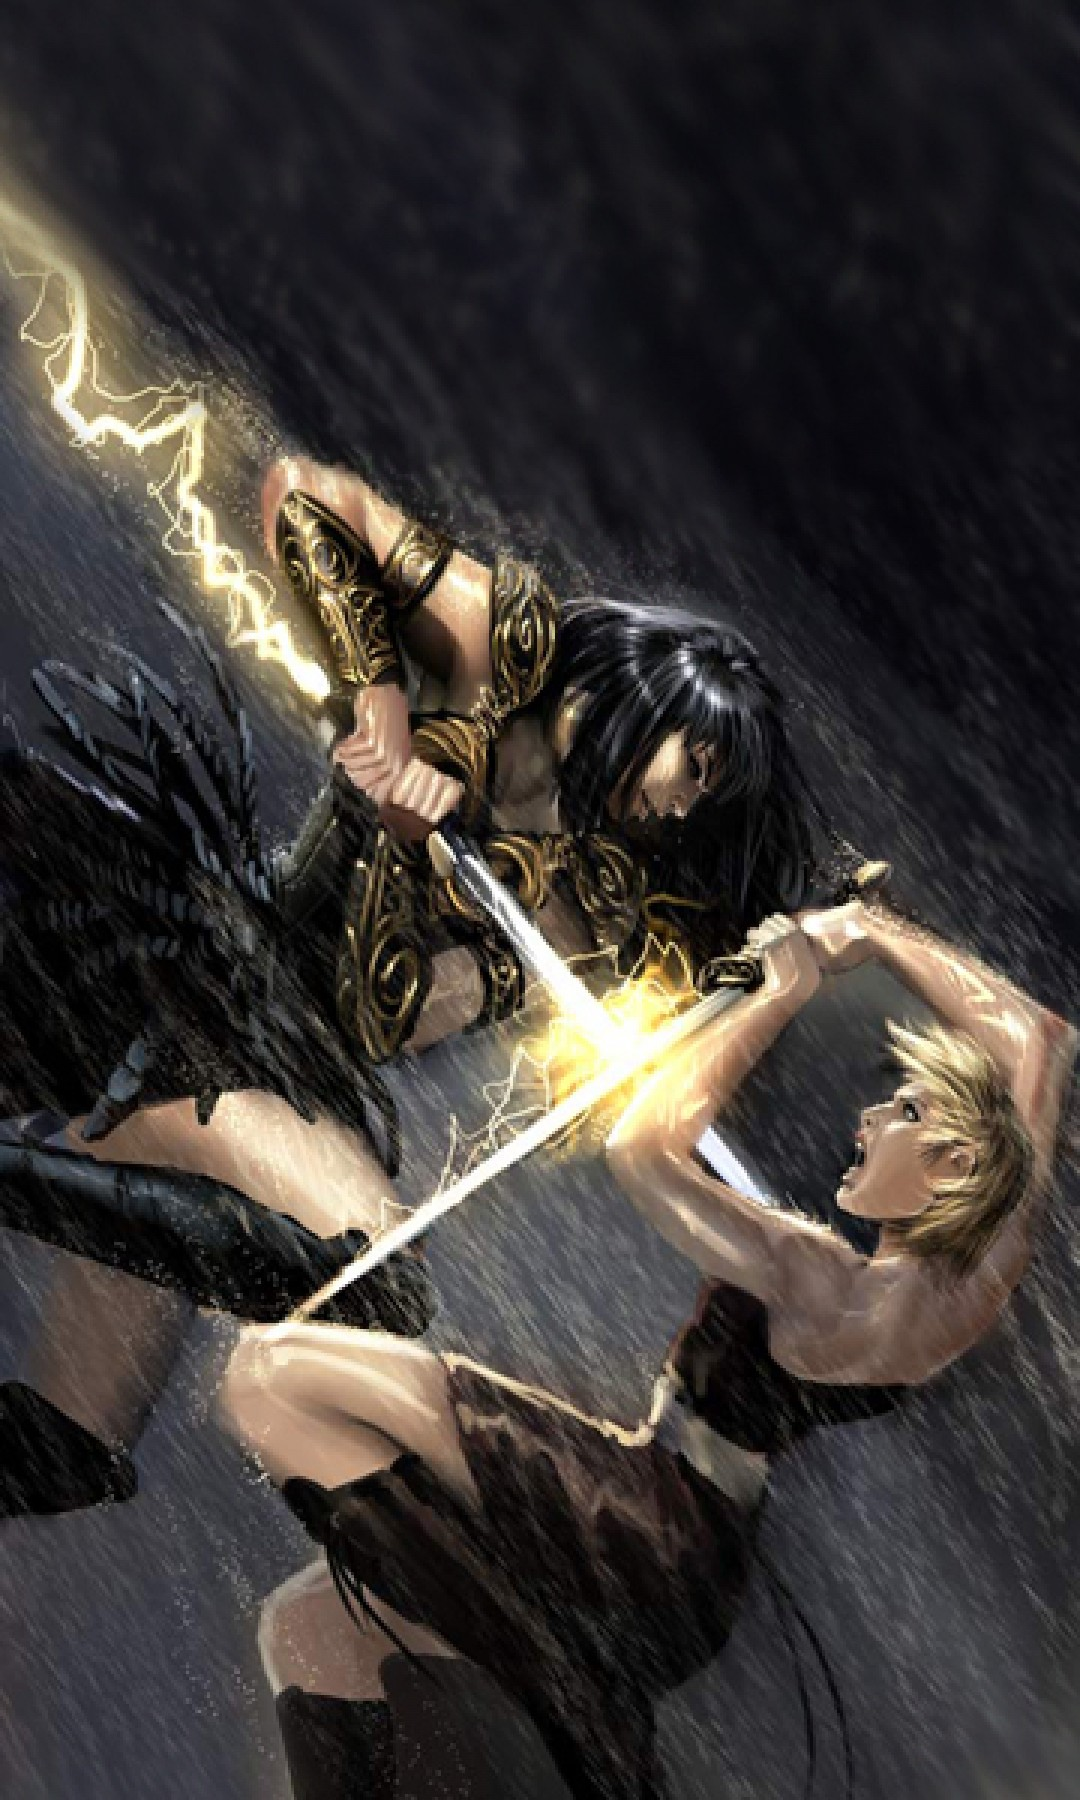 Anime 3d xena warrior princess video adult thumbs